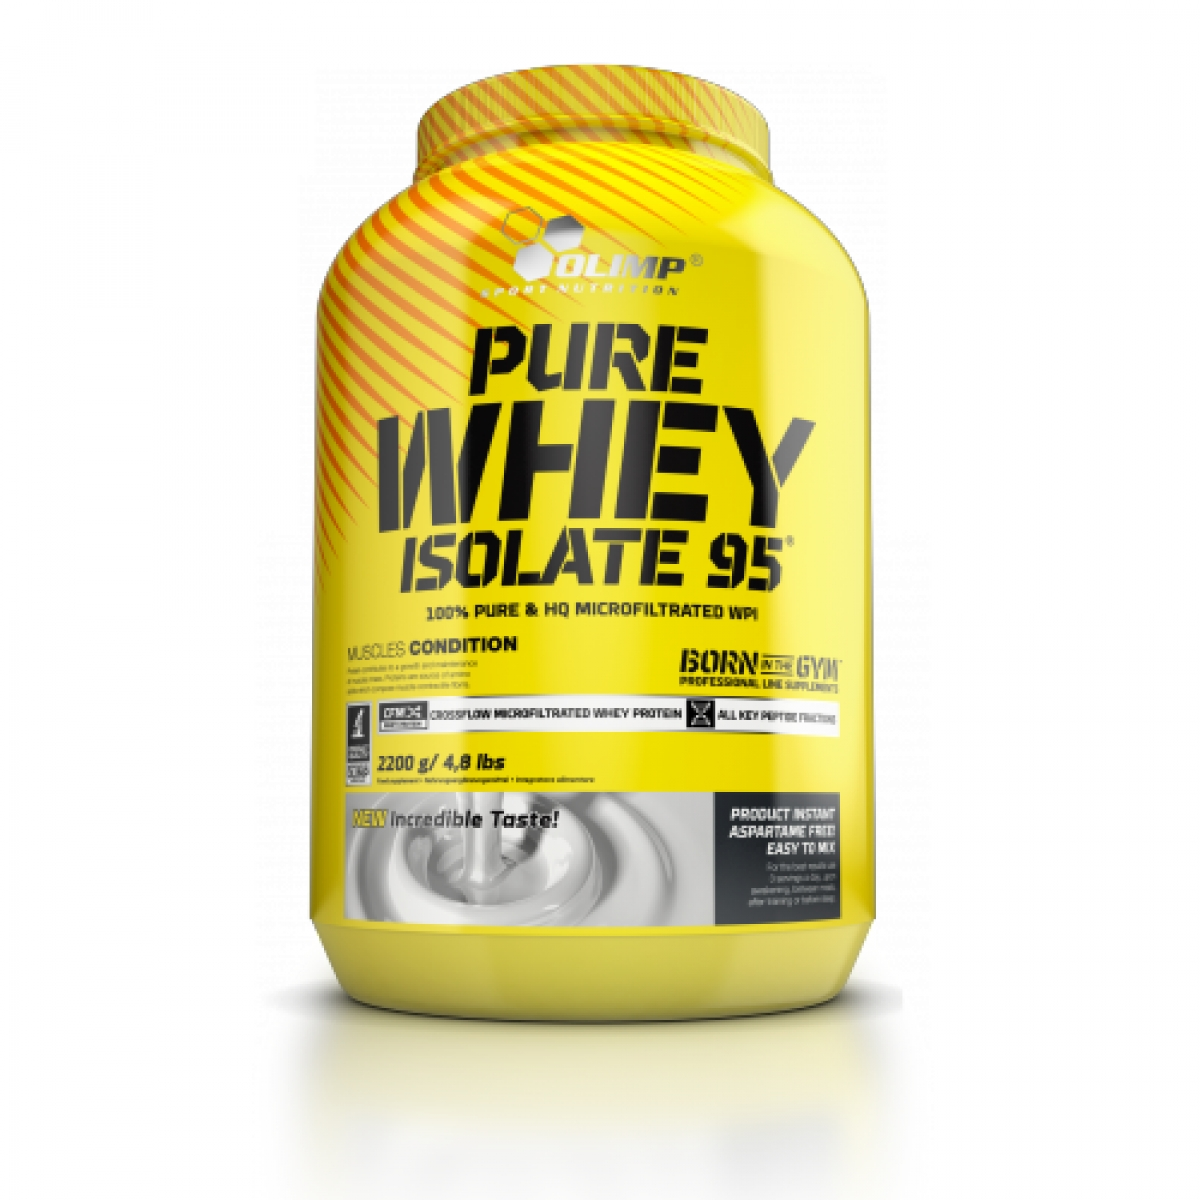 PURE WHEY ISOLATE 95, 2200 QR